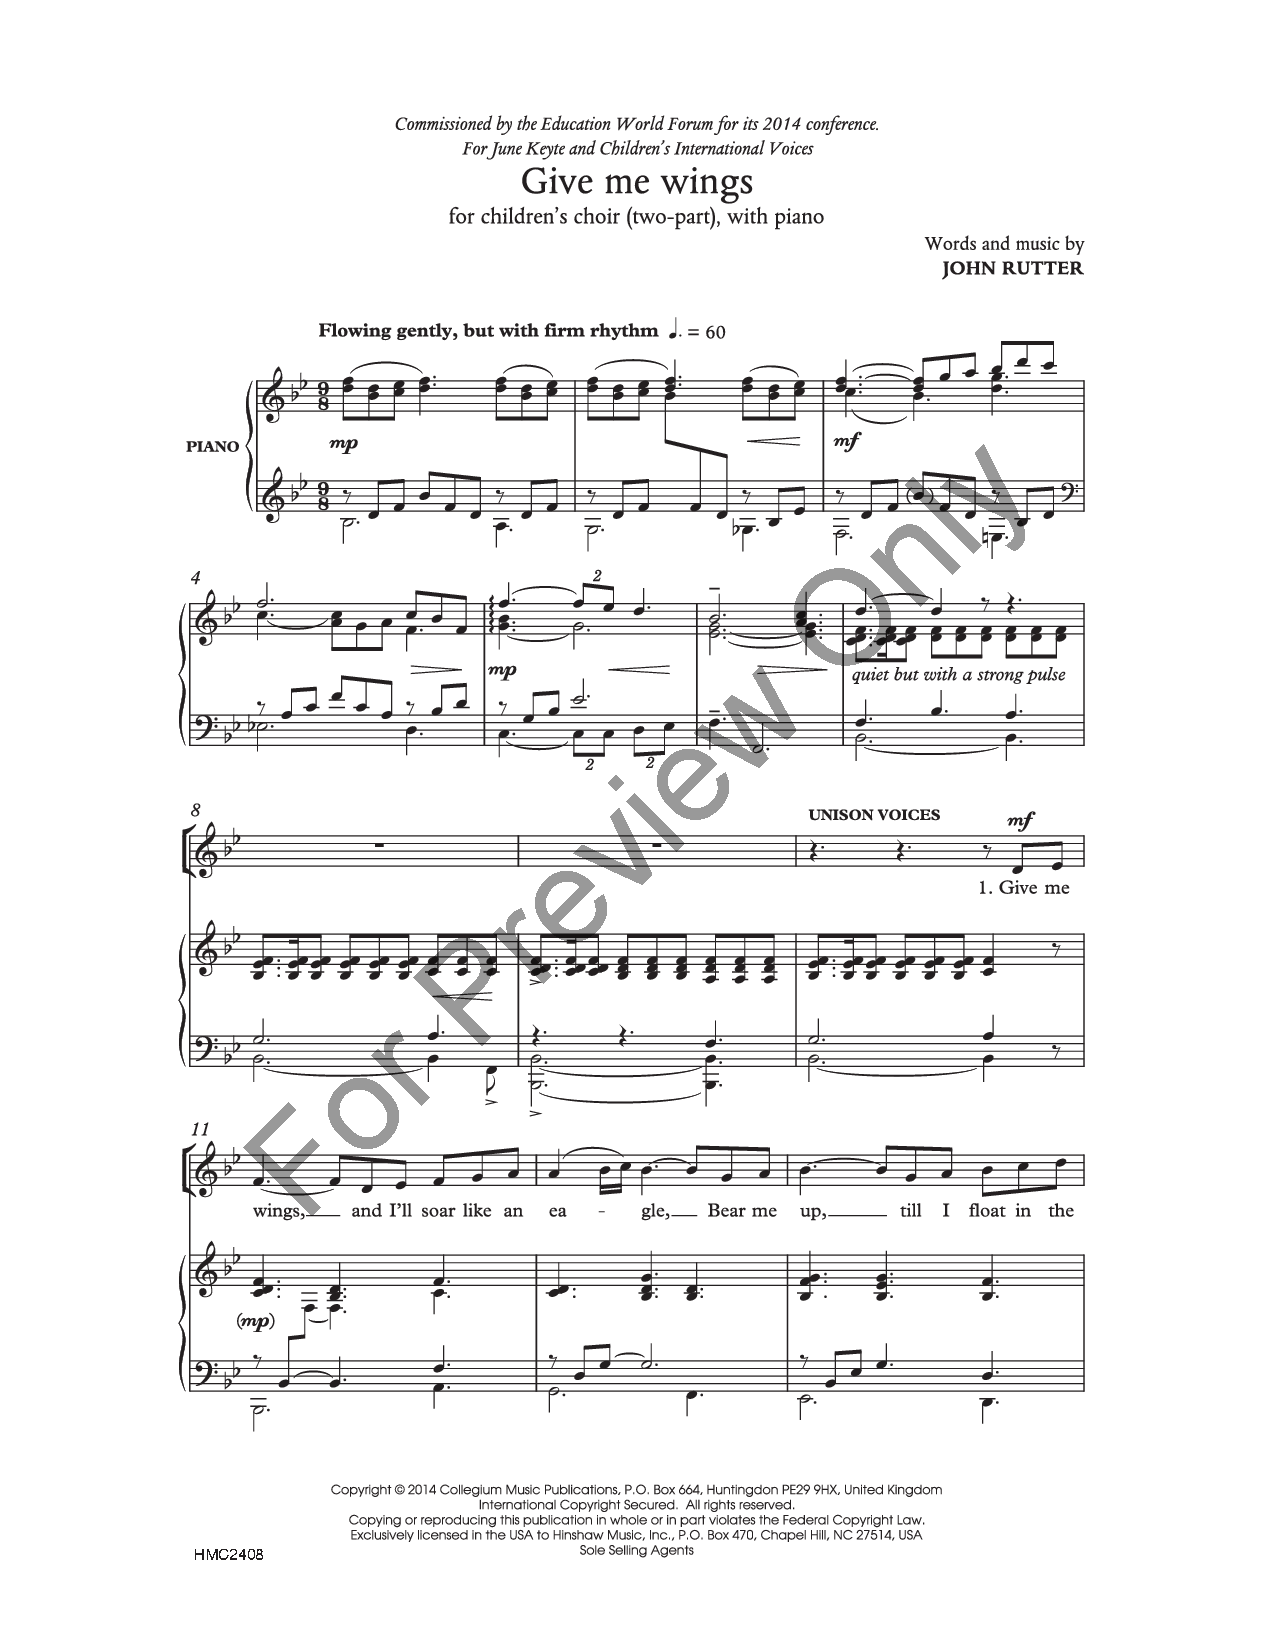 5 copies Warm-Ups and Workouts for the Developing Choir Vocal and Piano Cho I